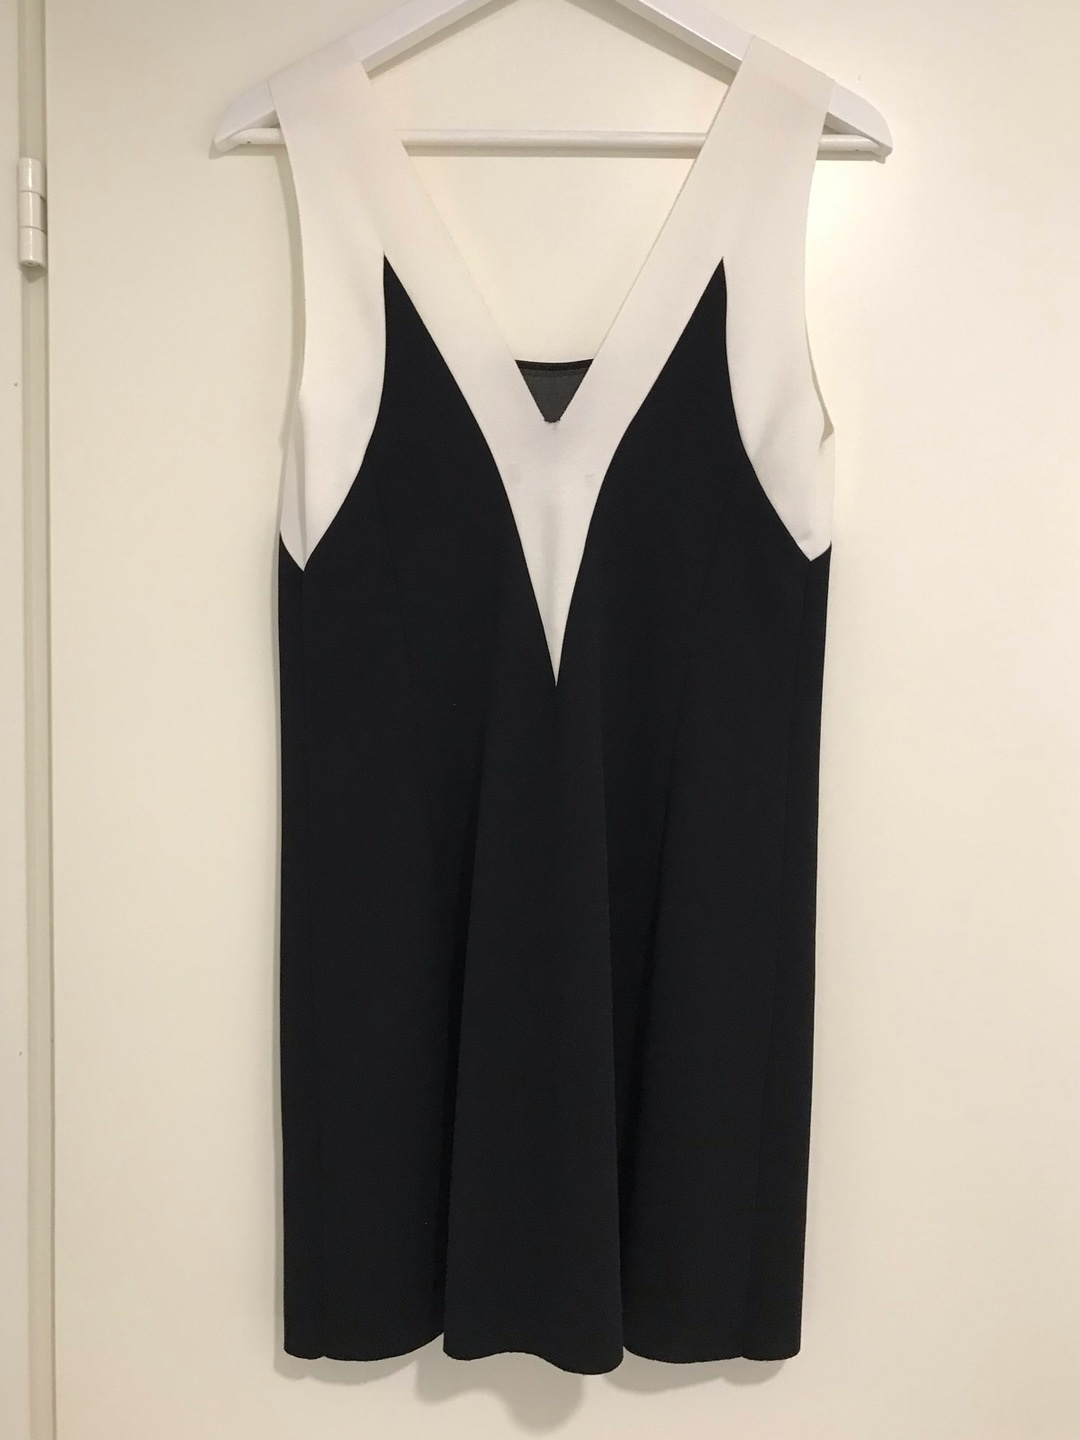 Women's dresses - ZARA photo 2